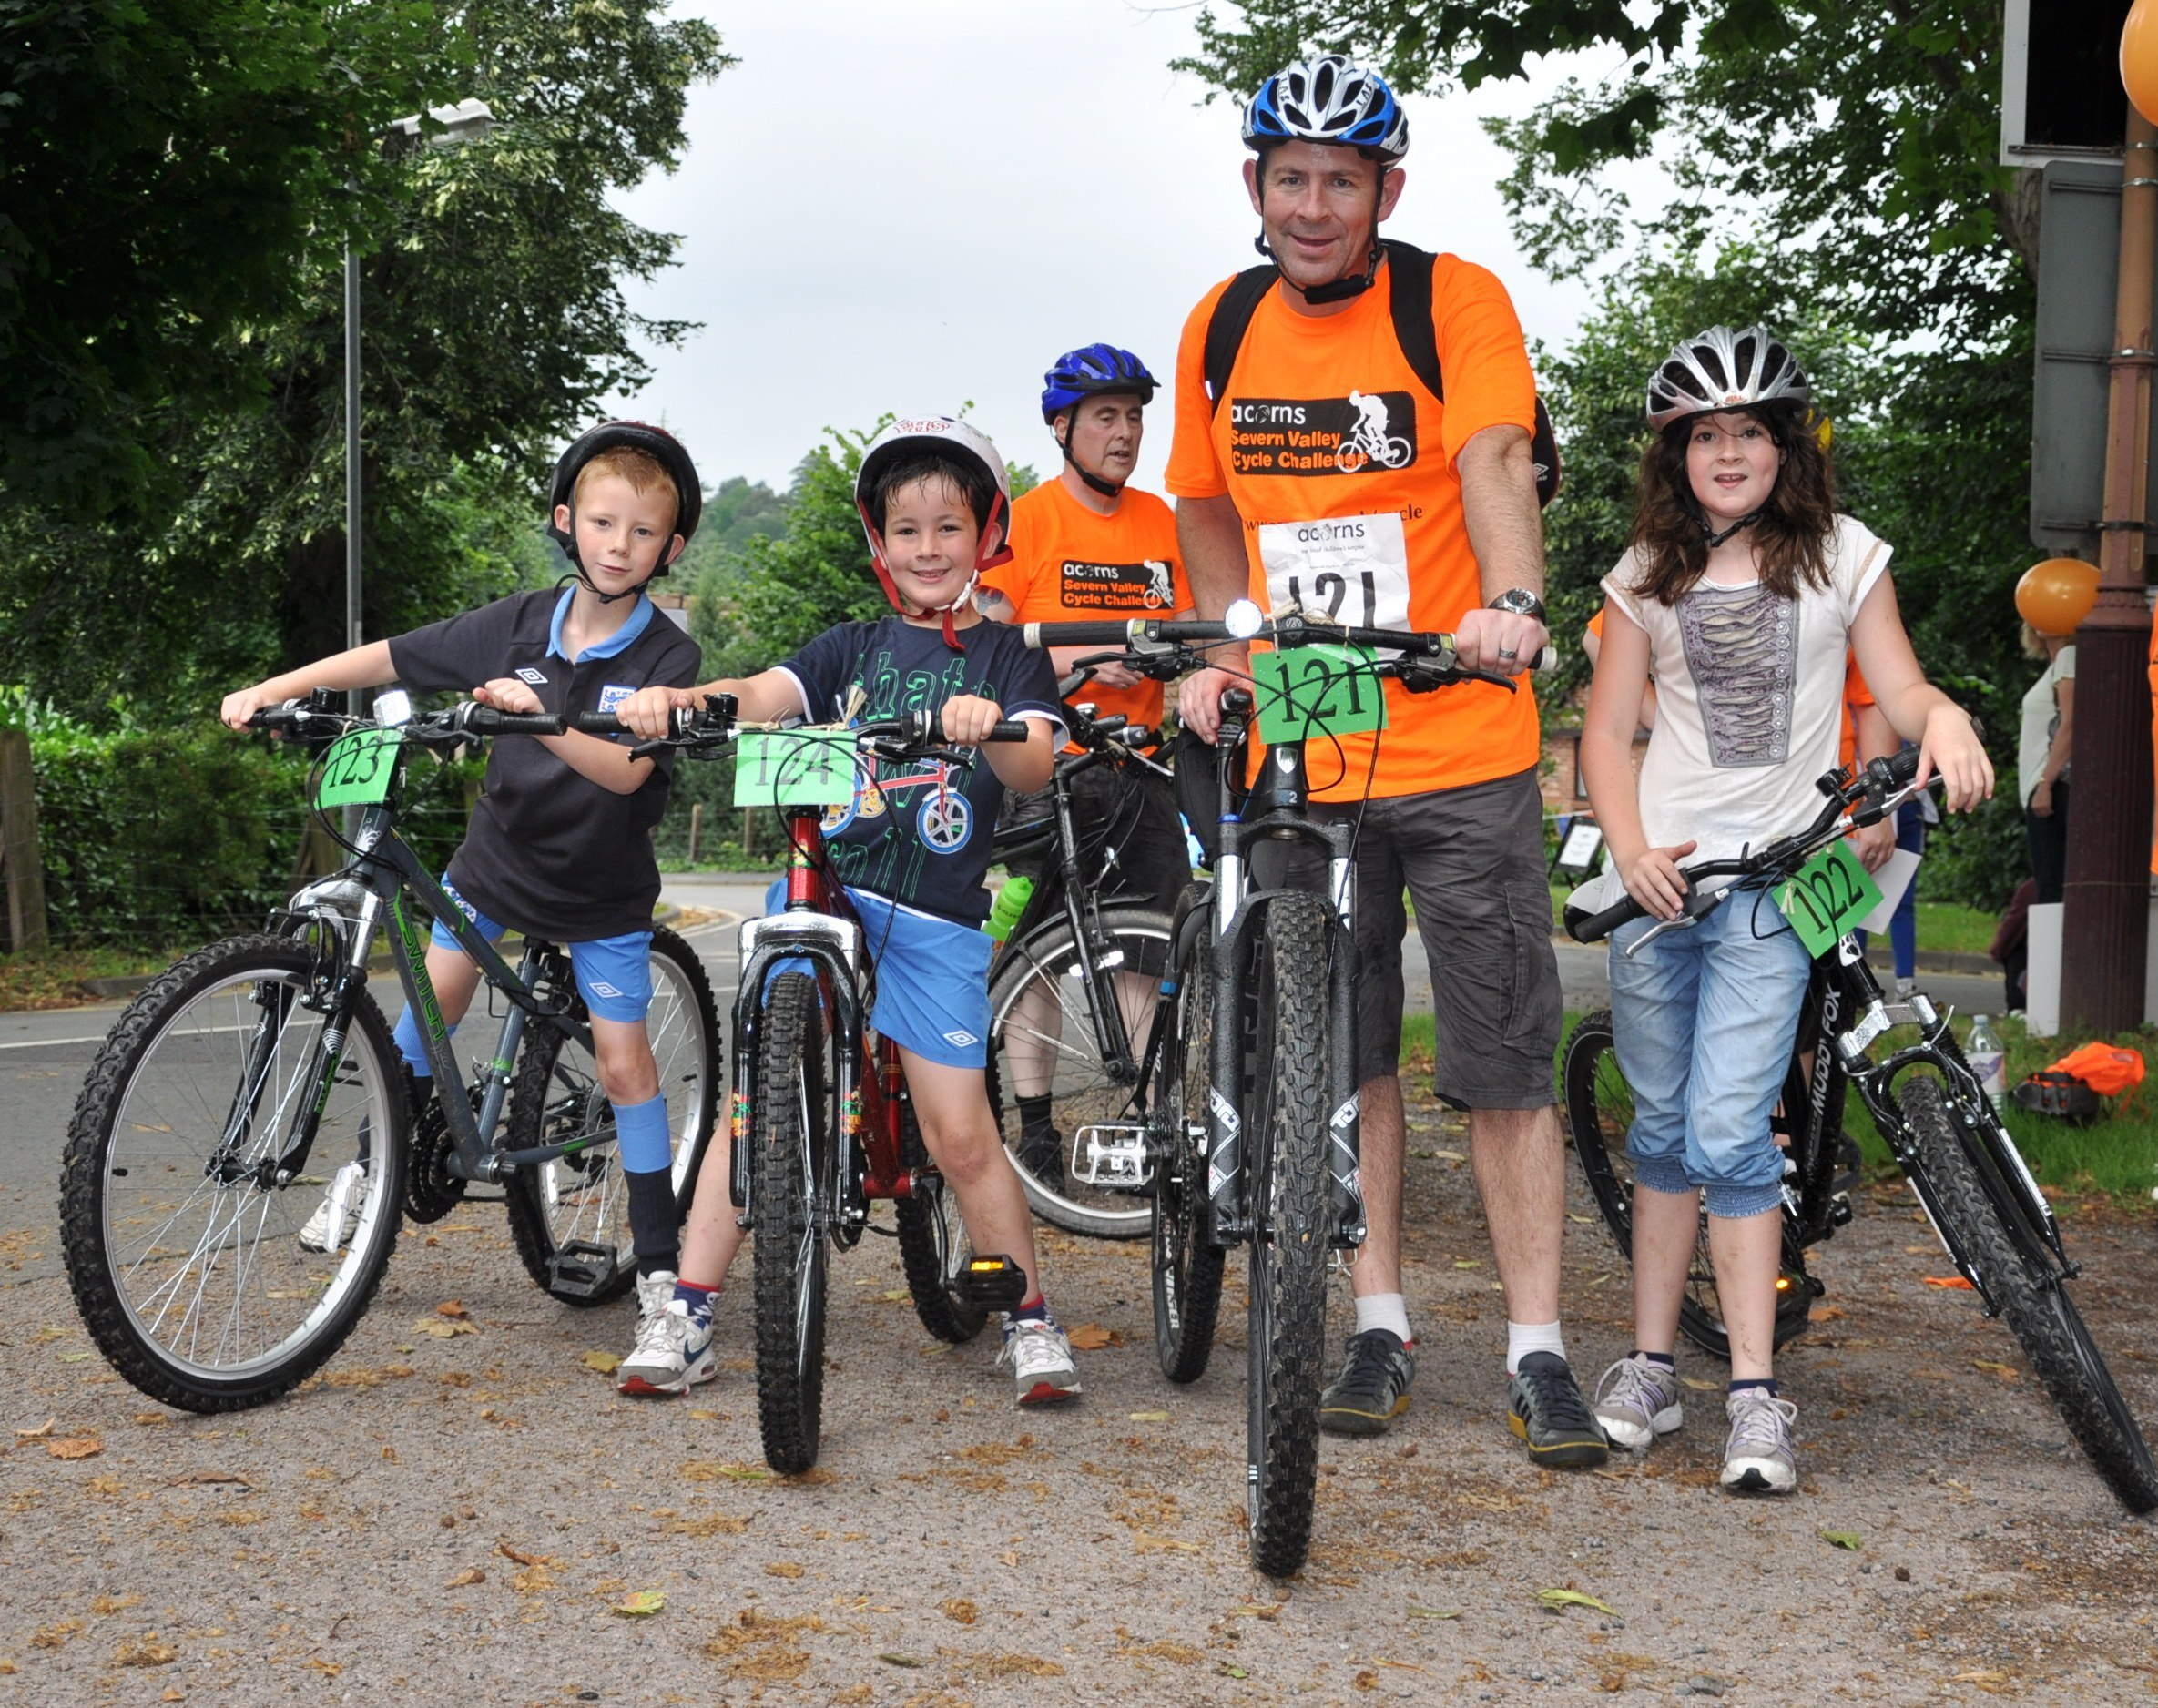 FAMILY CHALLENGE: The Price family from Solihull taking part in last year's Acorns Cycle Challenge.